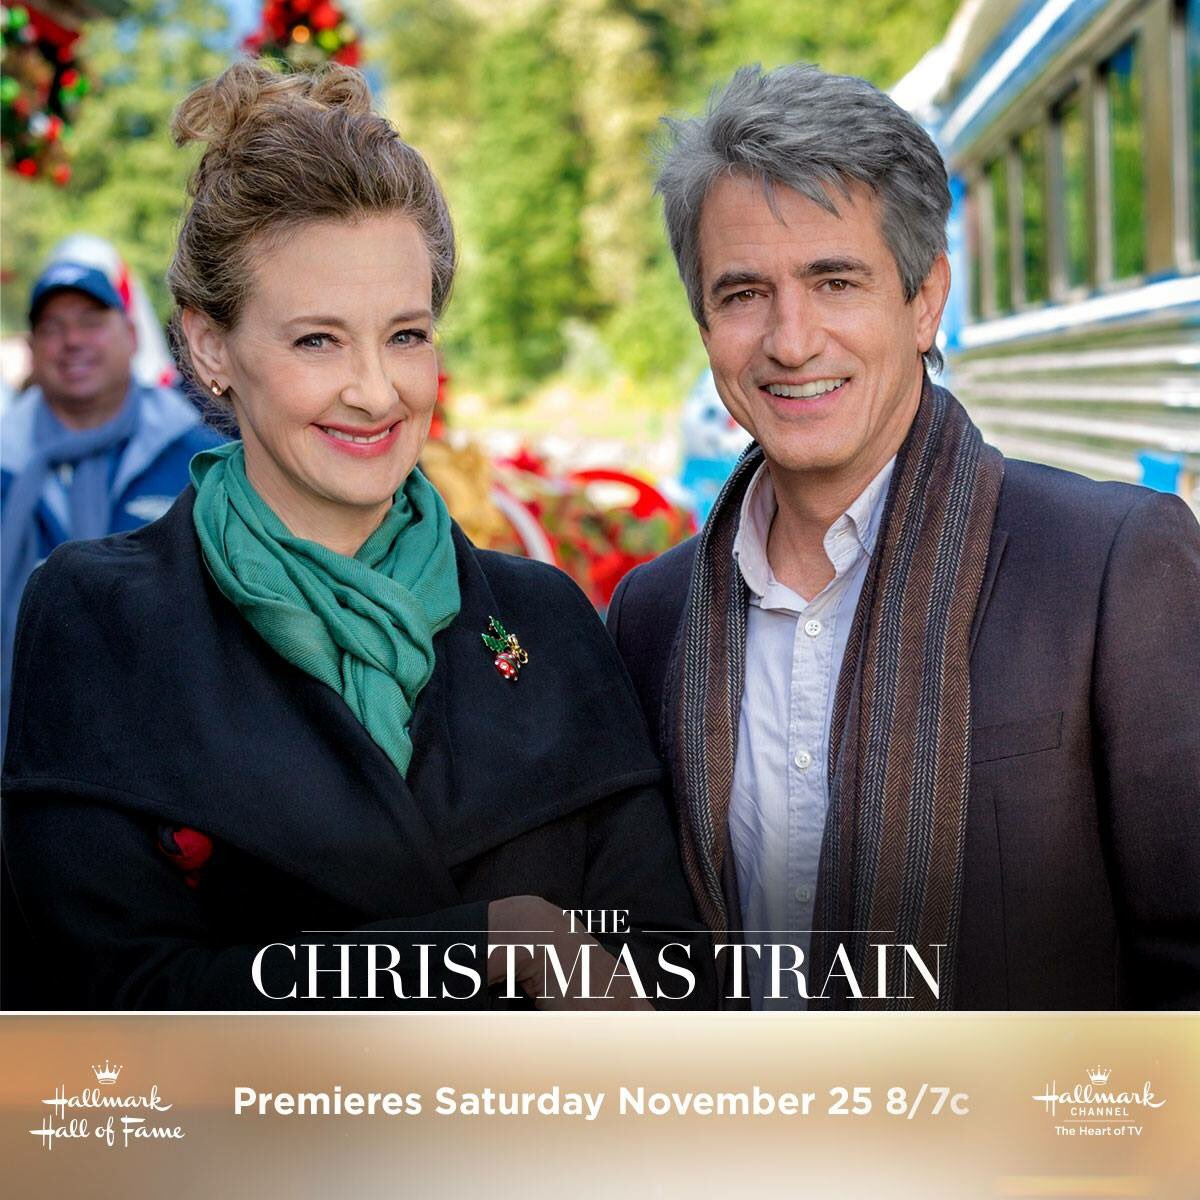 Hallmark The Christmas Train.Michellevicary On Twitter Romance Mystery And A Little